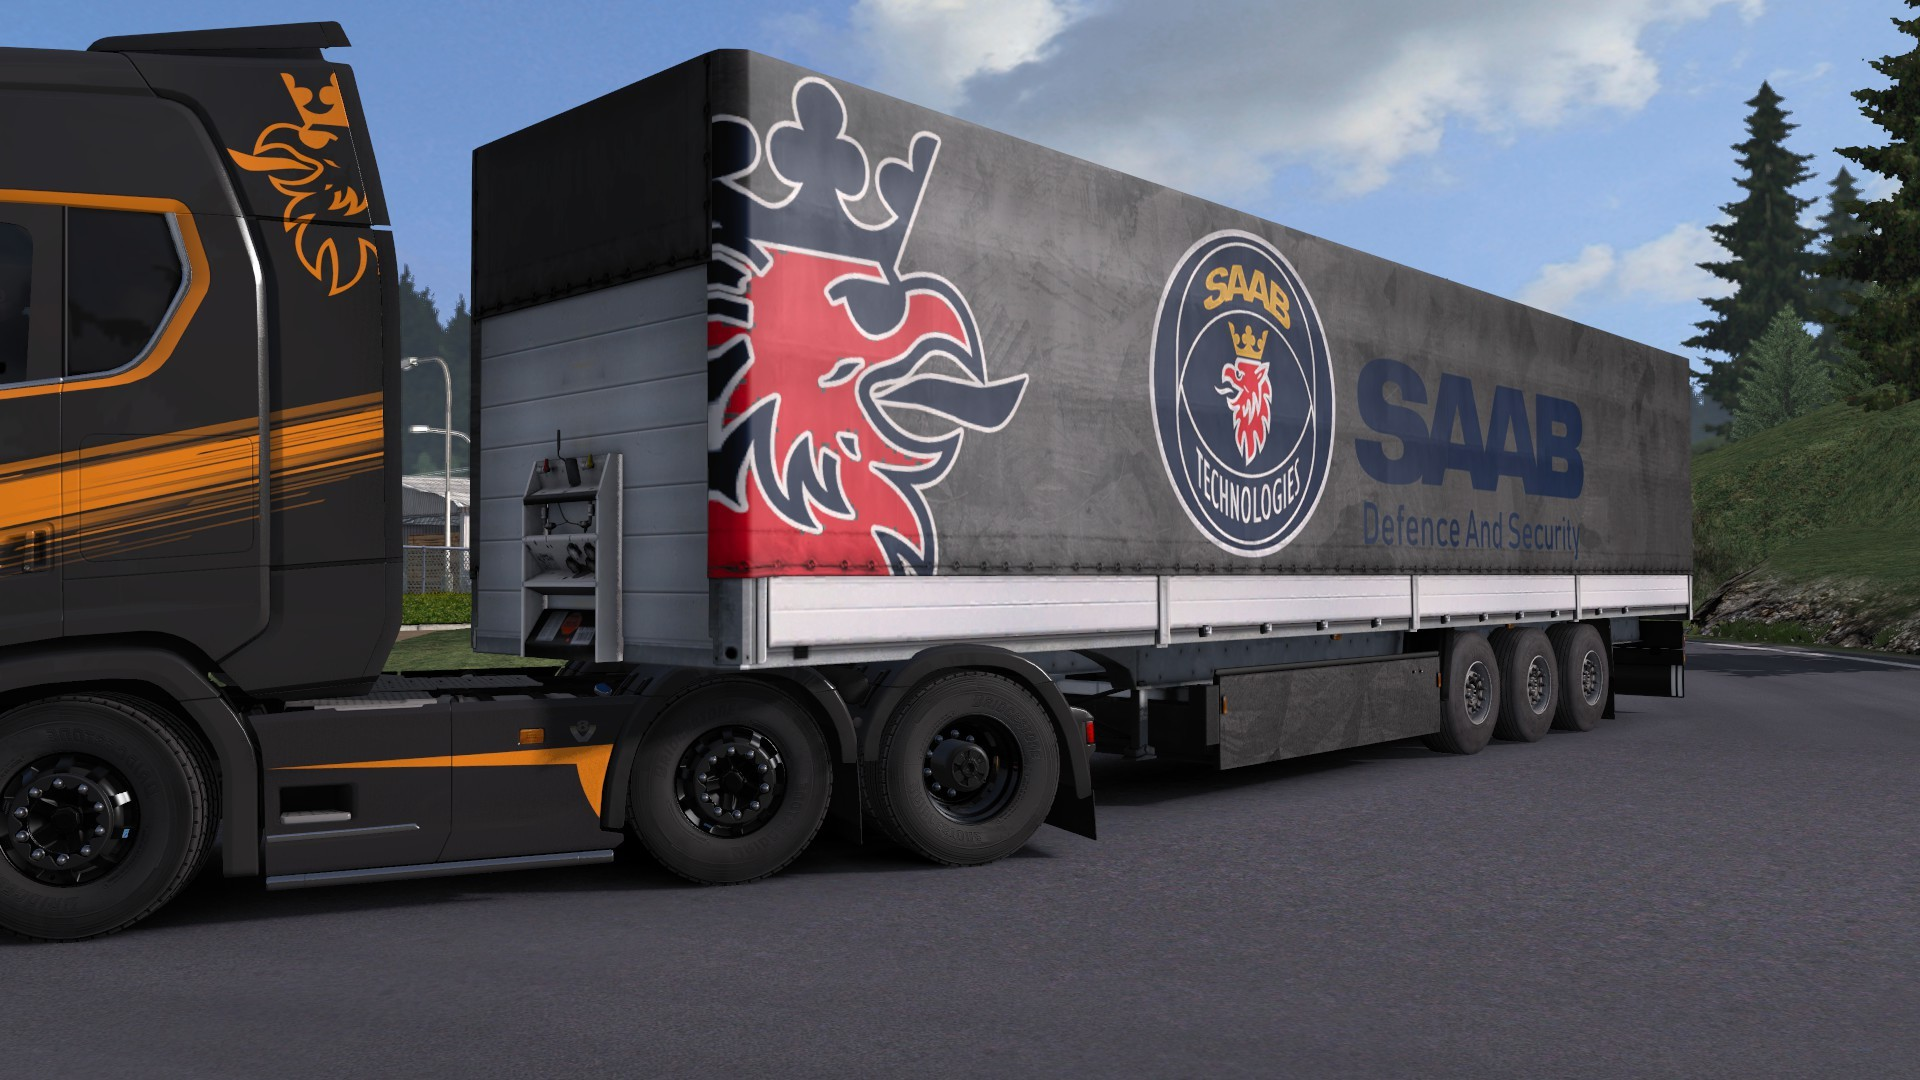 Saab Technologies Trailer by l1zzy